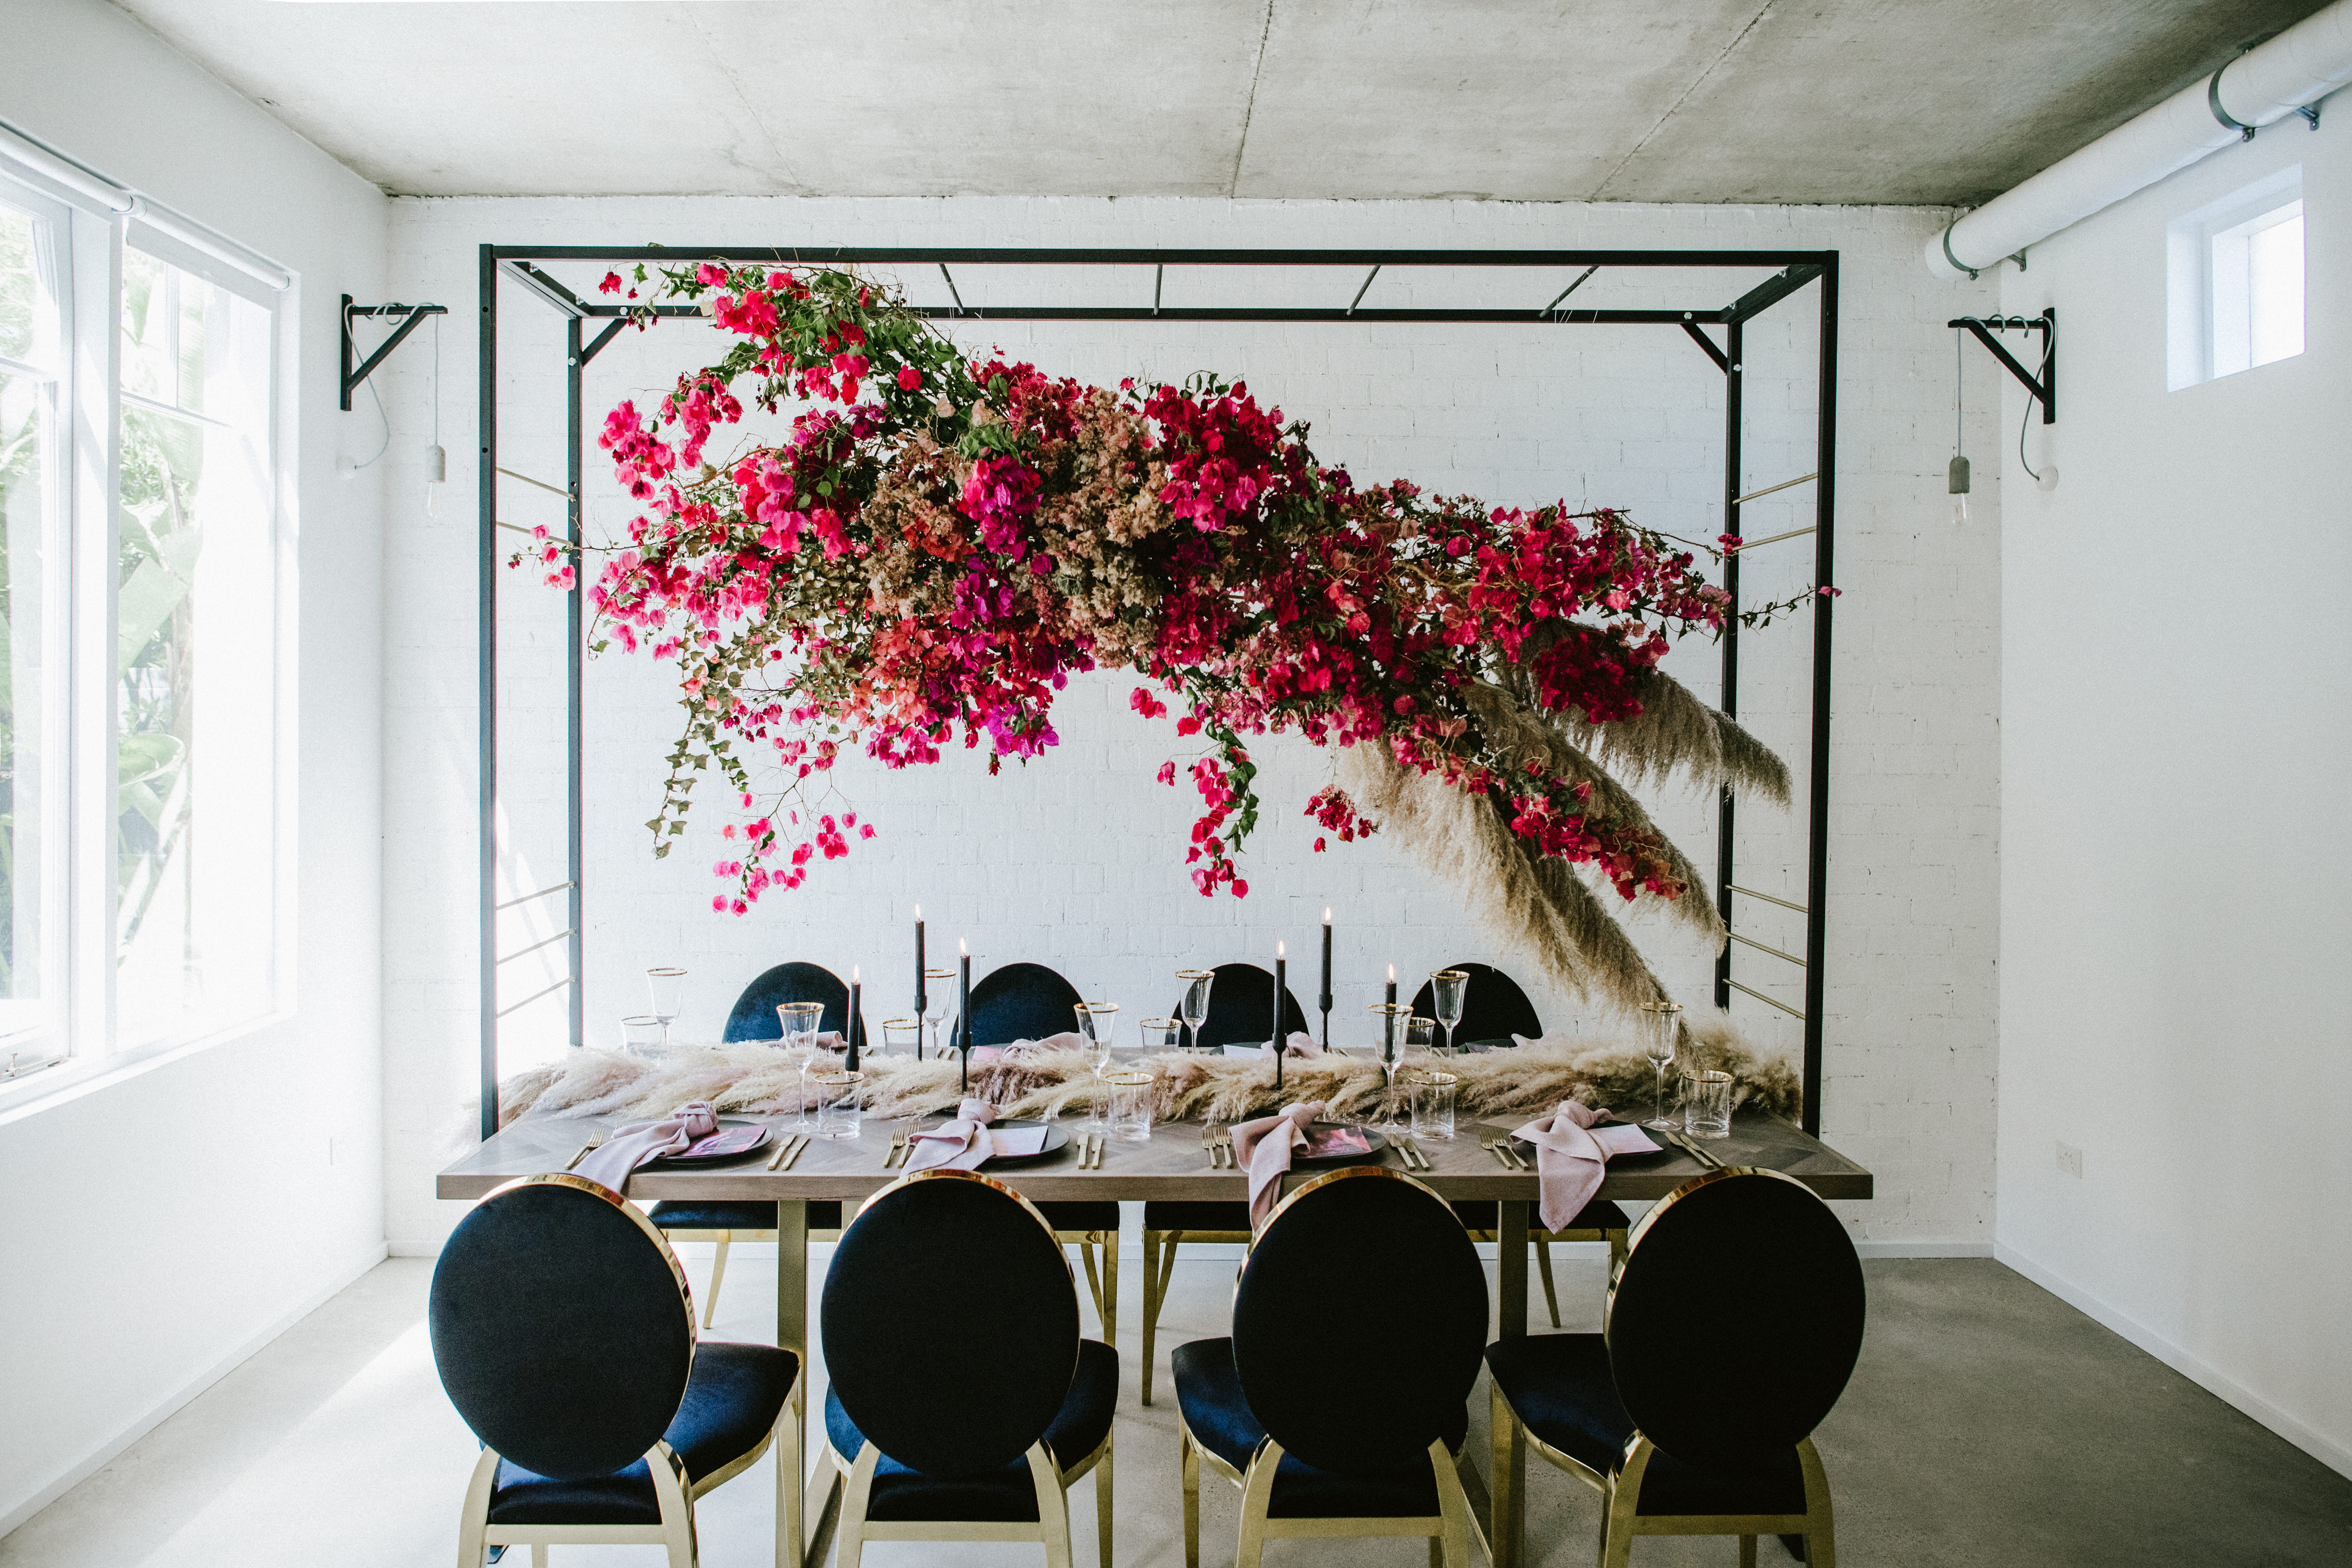 Floral Decor: Love Is In The Air! Hanging Floral Installation Ideas For